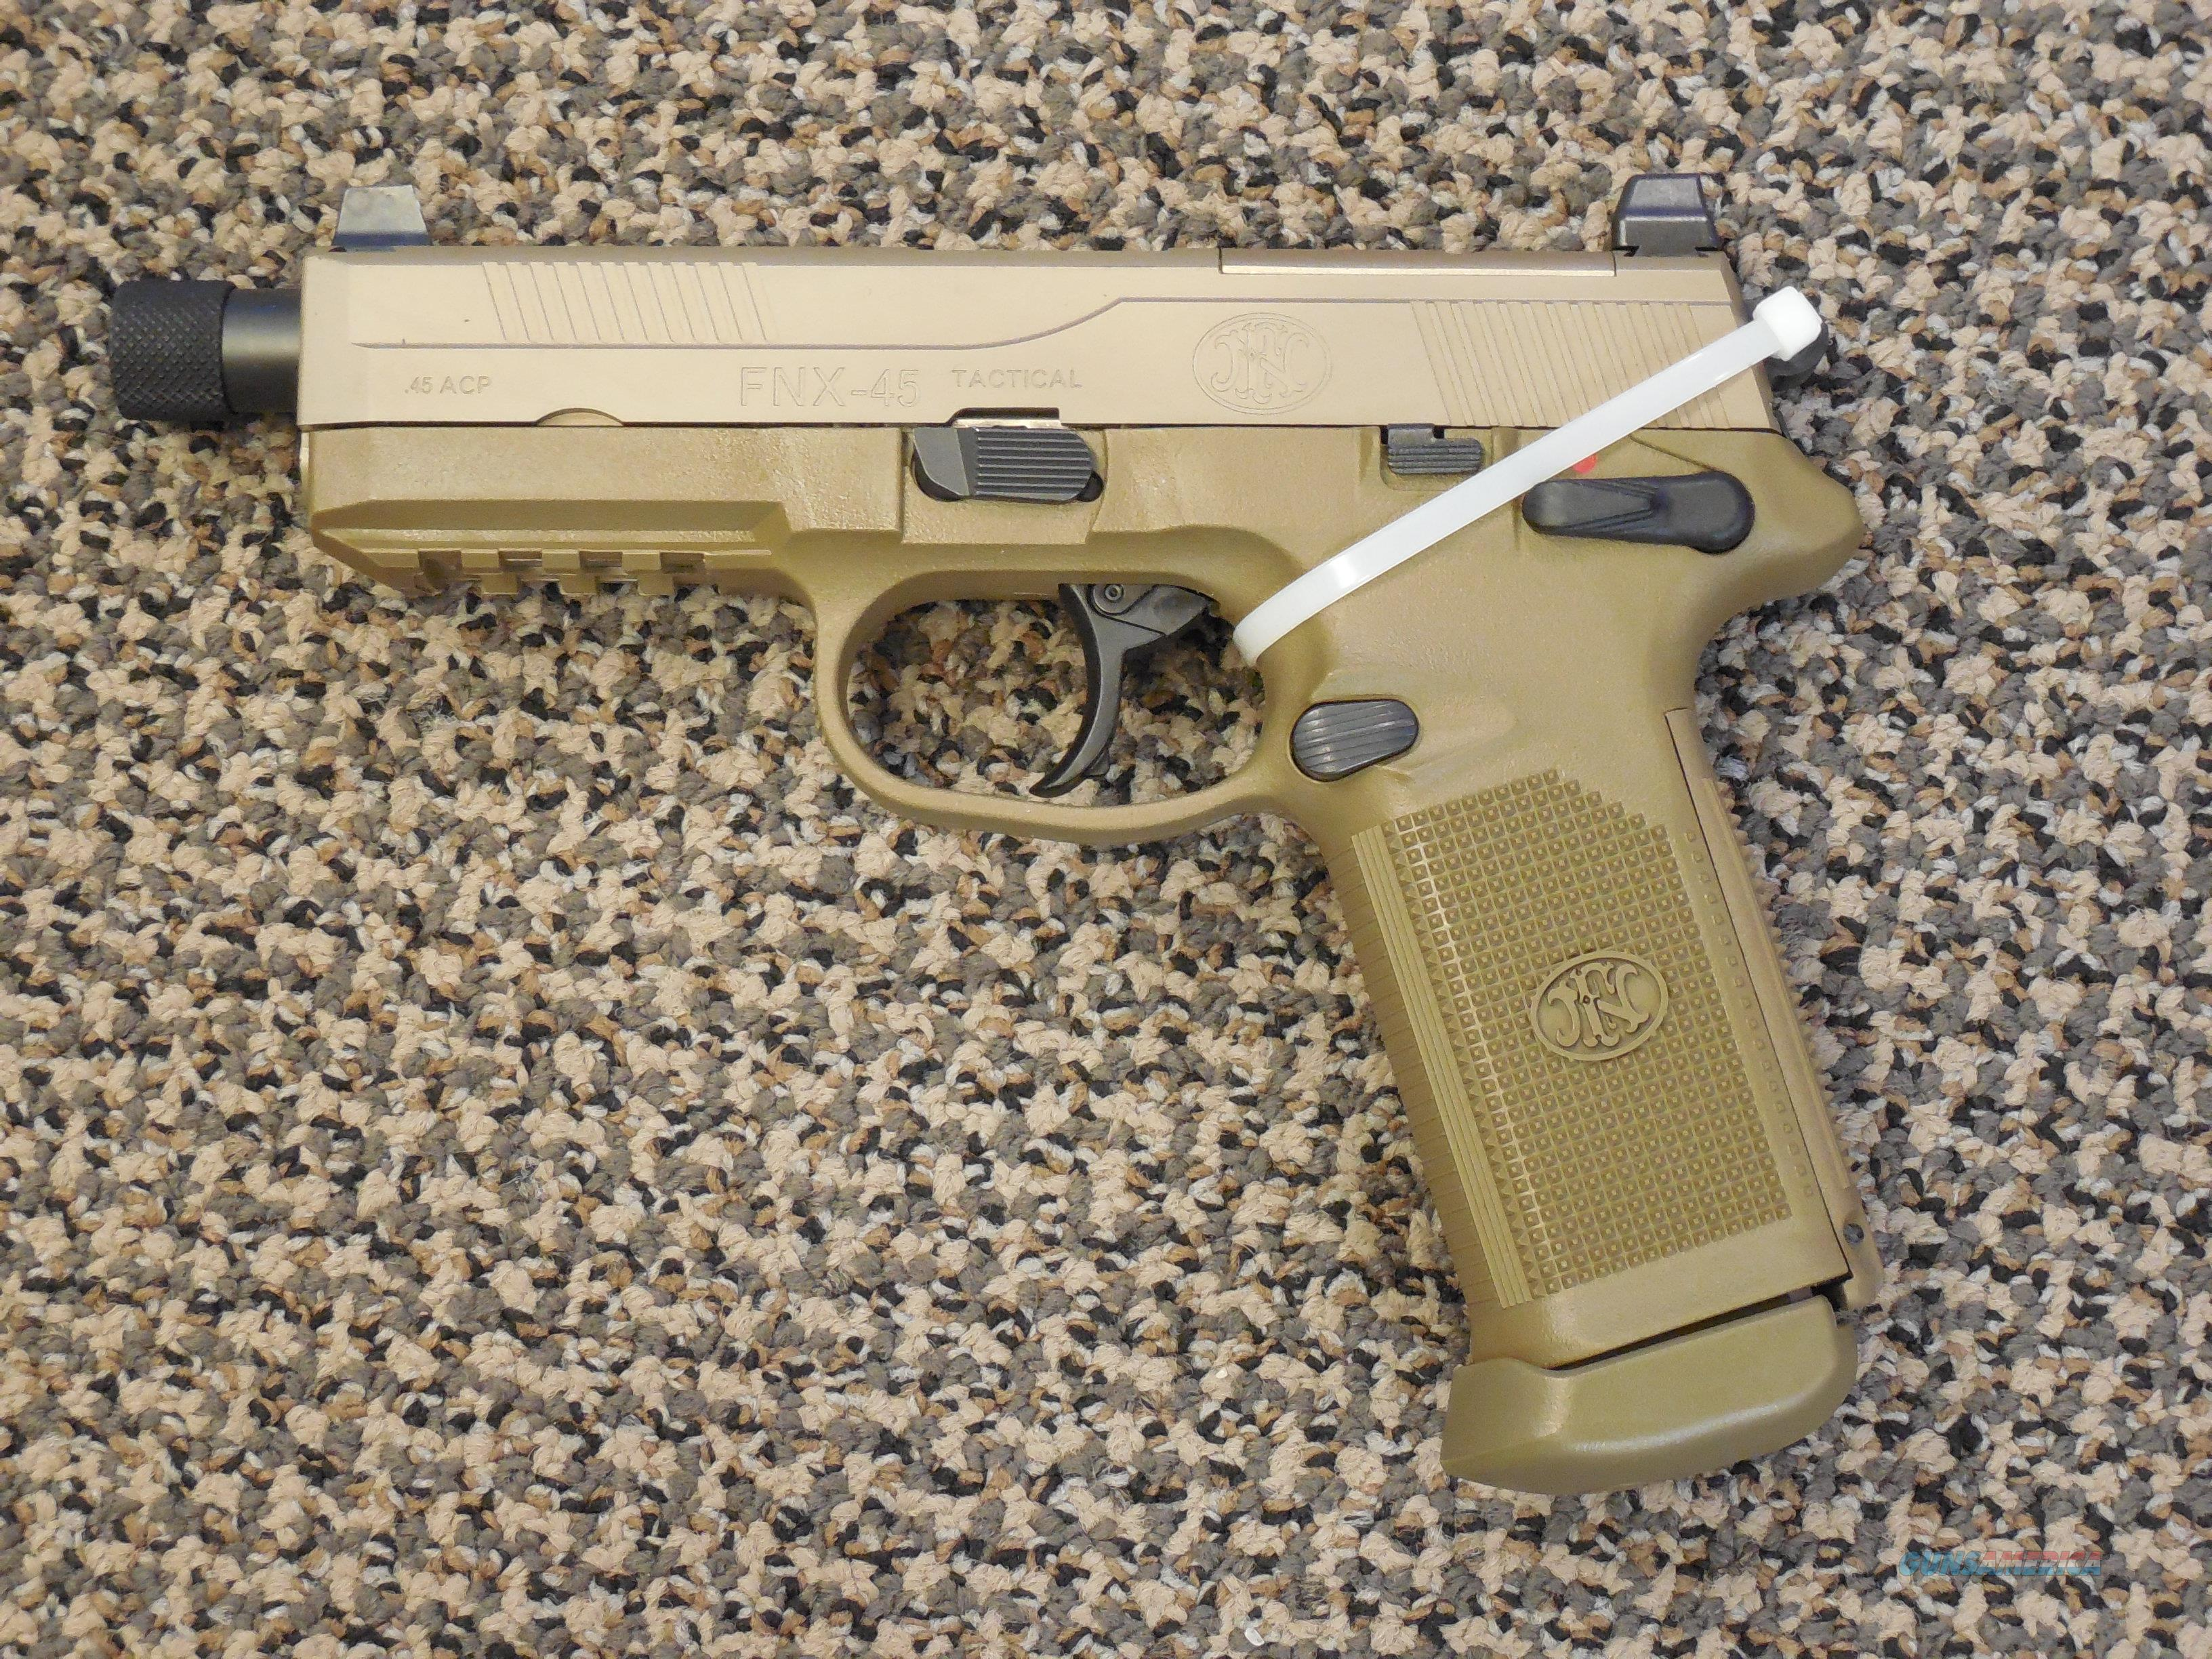 FnH MODEL FNX-45 TACTICAL PISTOL FINISHED IN FDE  Guns > Pistols > FNH - Fabrique Nationale (FN) Pistols > FNX